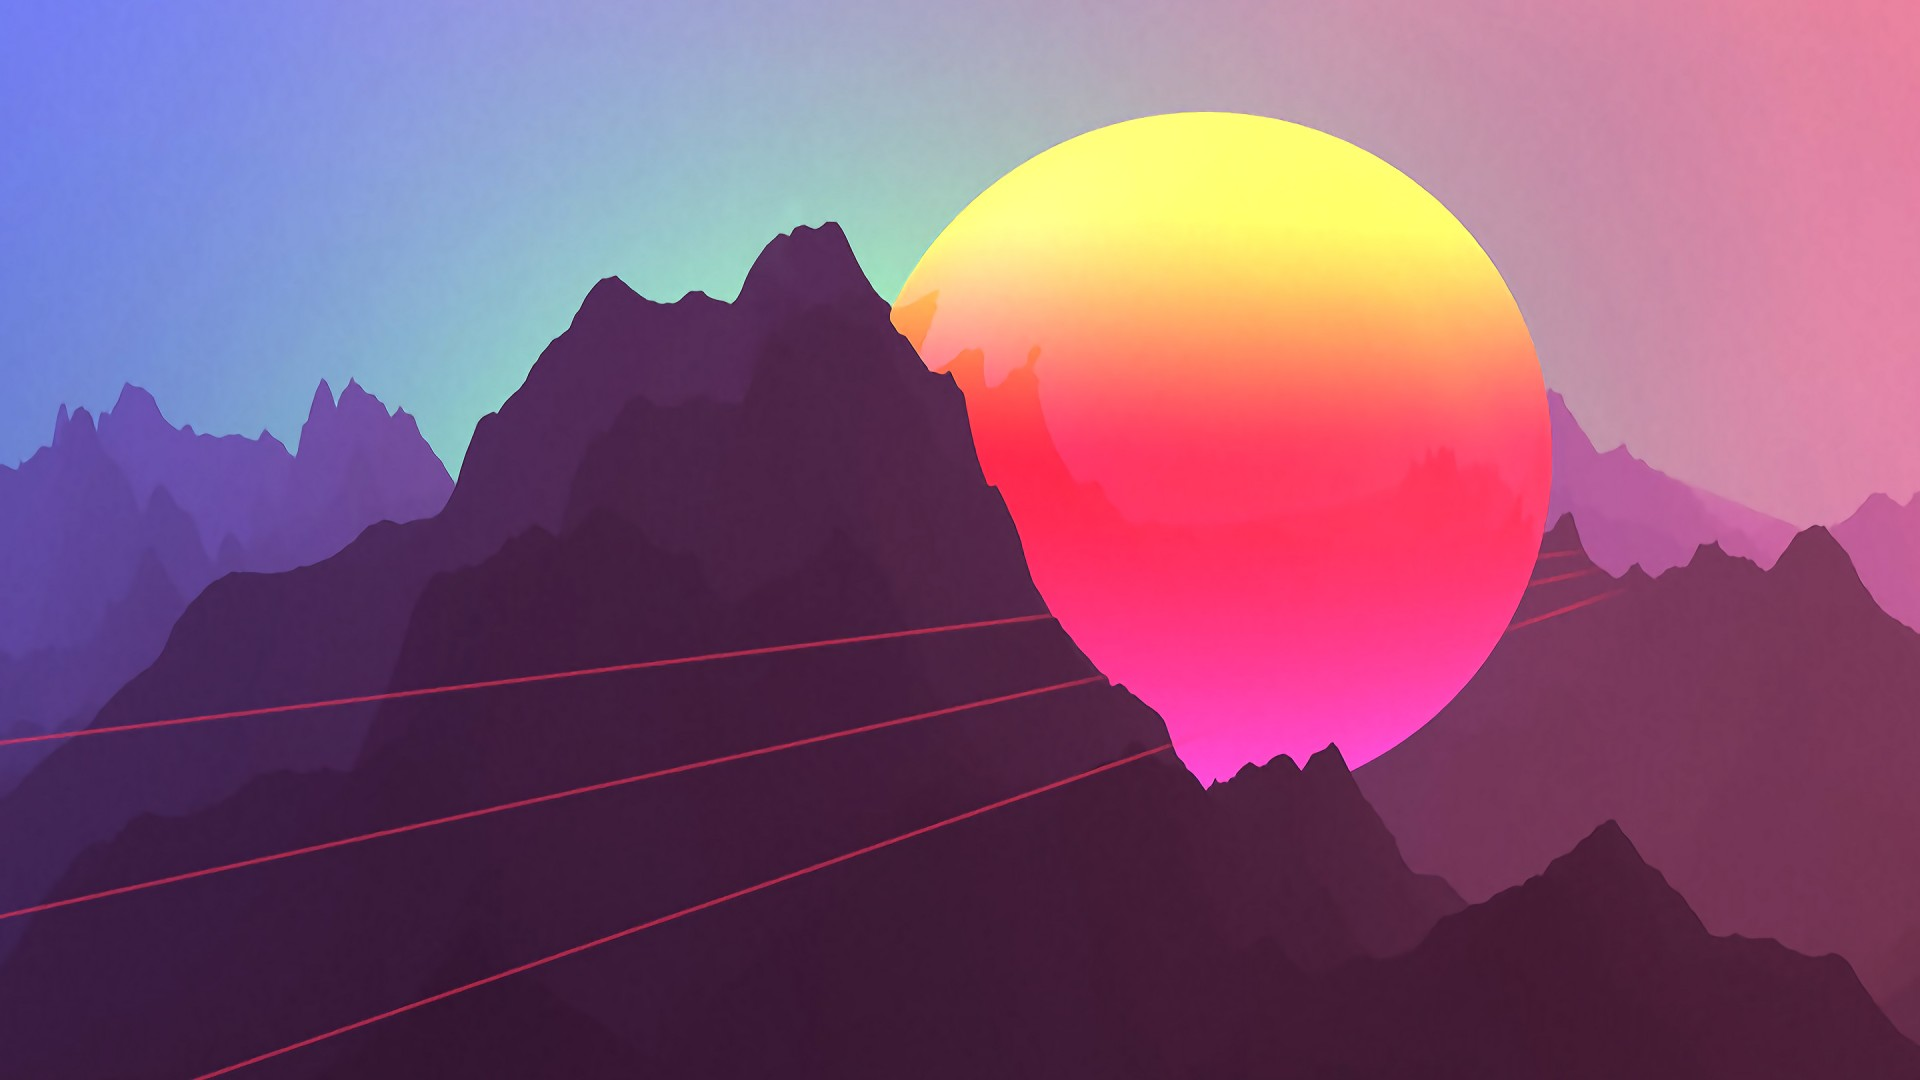 Neon Sunset Mountains iPhone 7 Plus / iPhone 8 Plus - HD ...